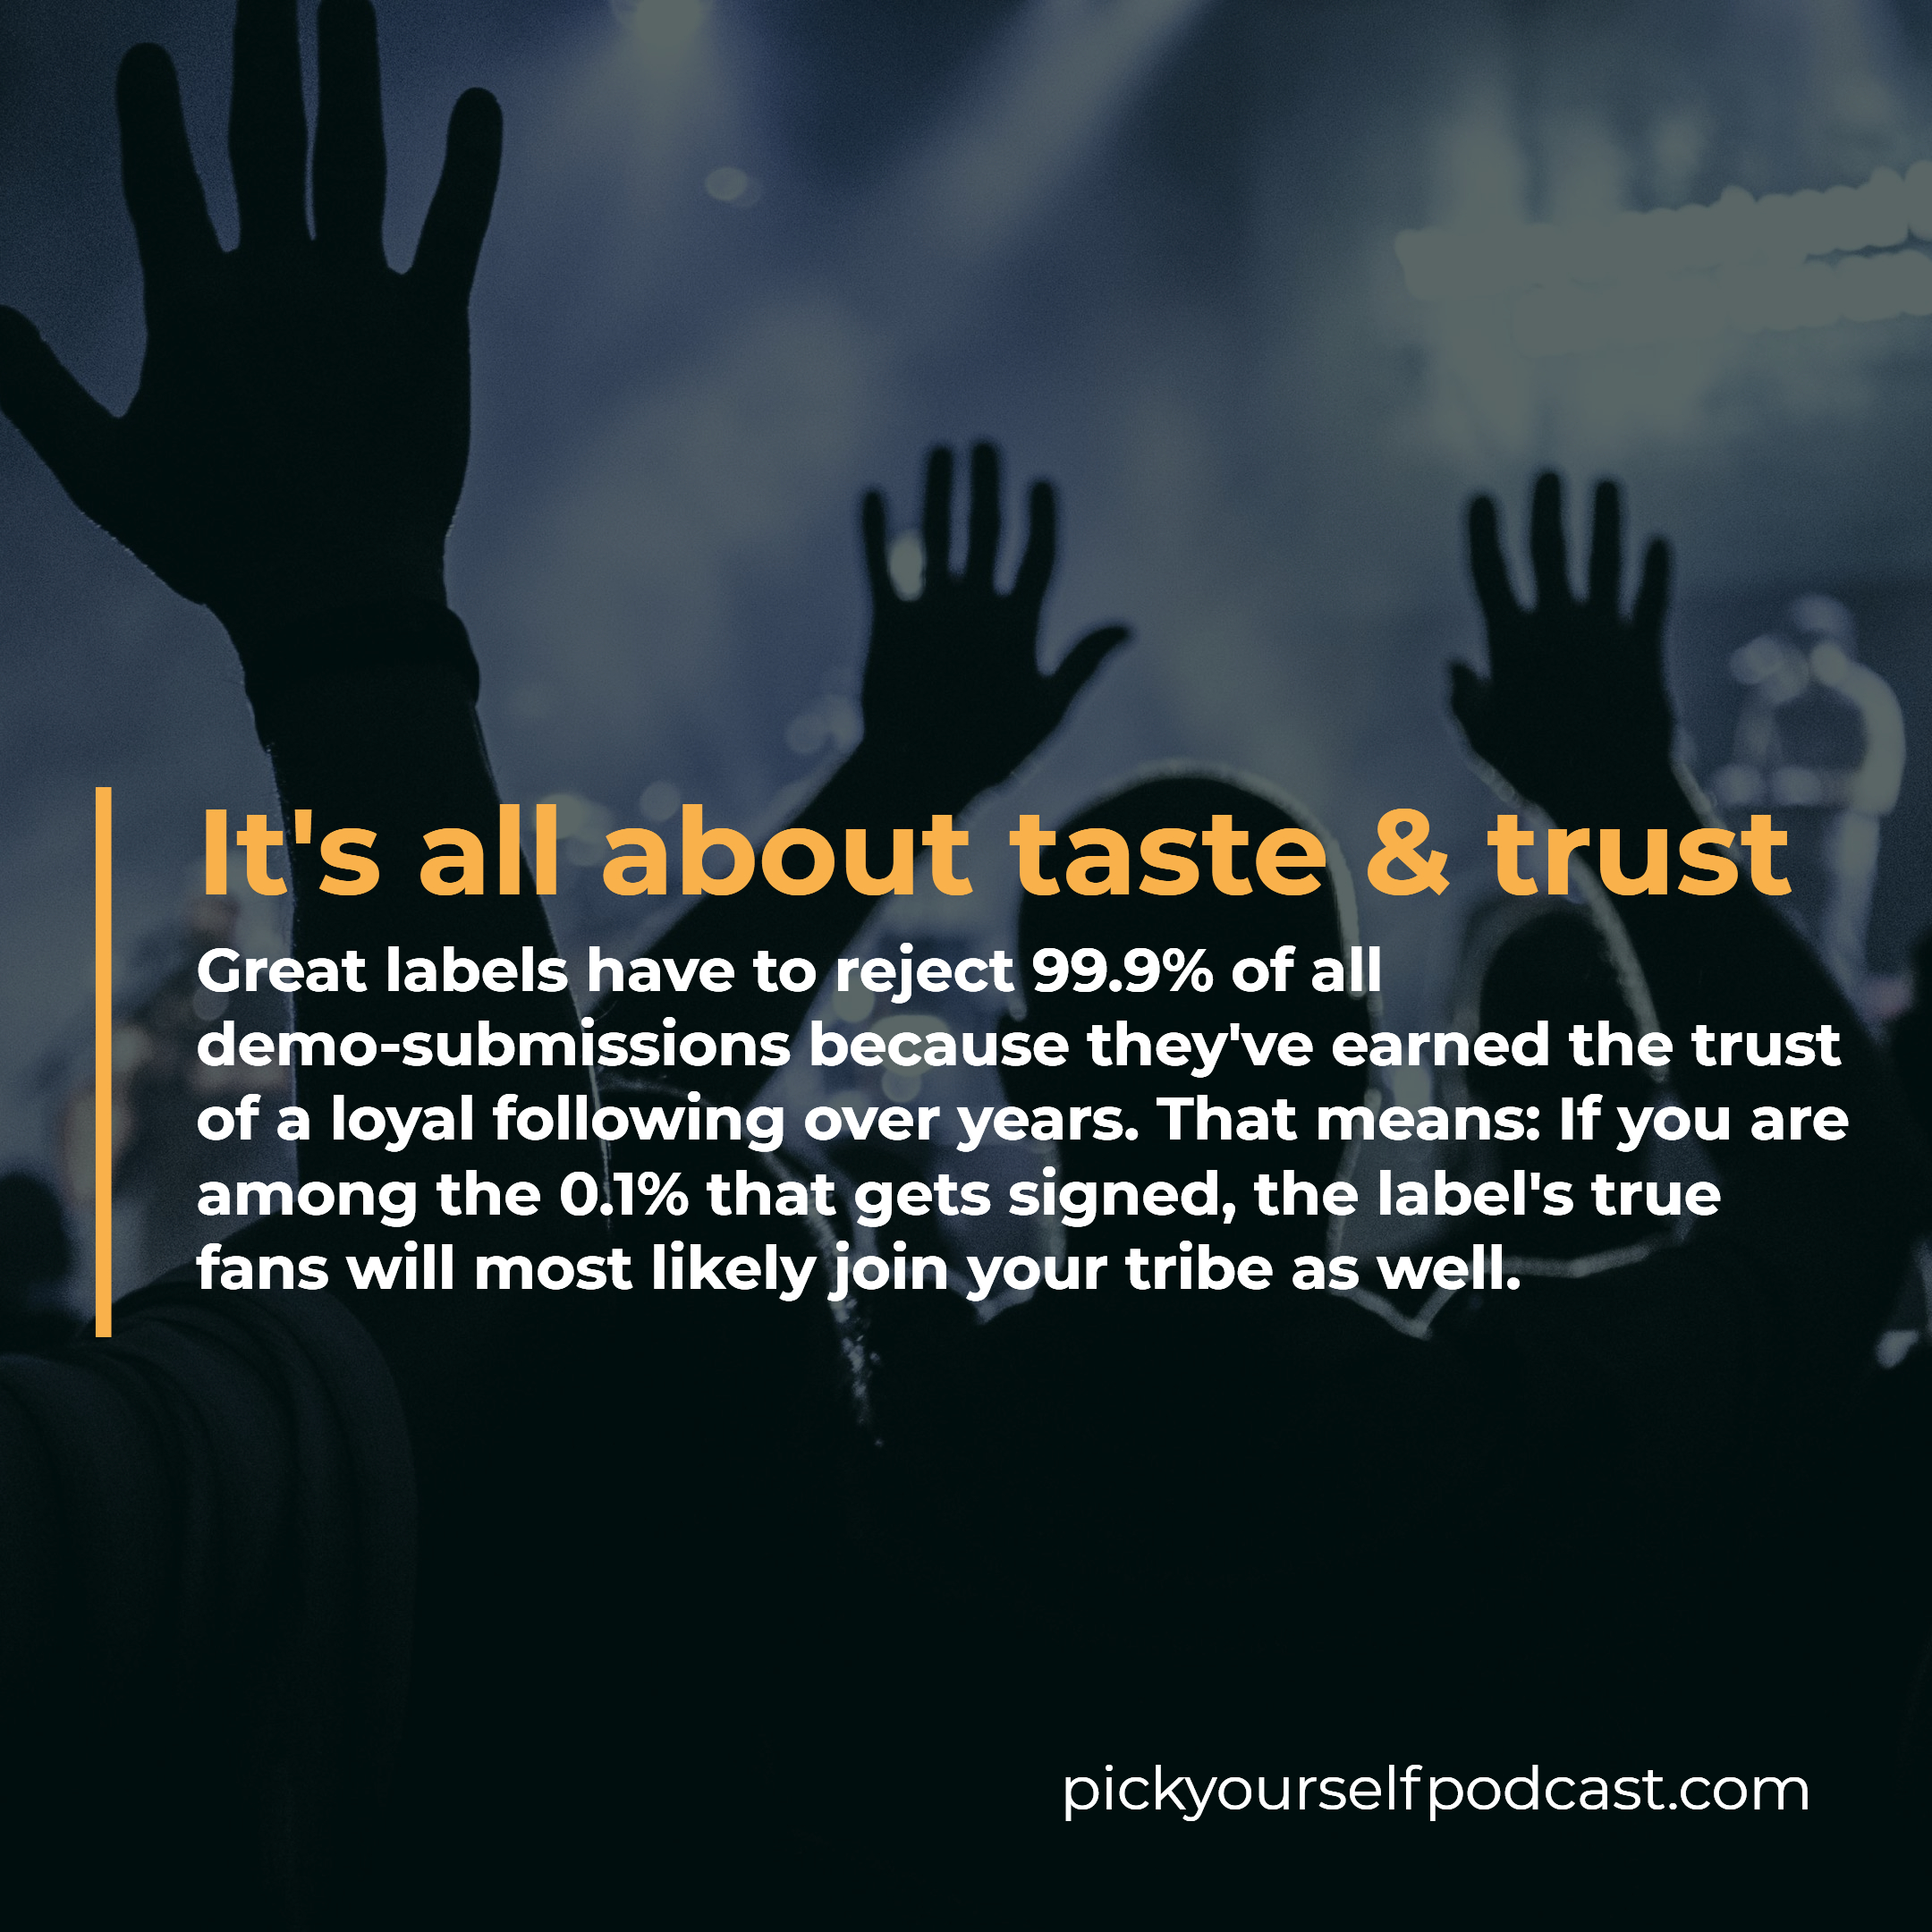 Record labels are still important. It's all about taste and trust. Great lables reject most demo submissions because they serve their true fans.